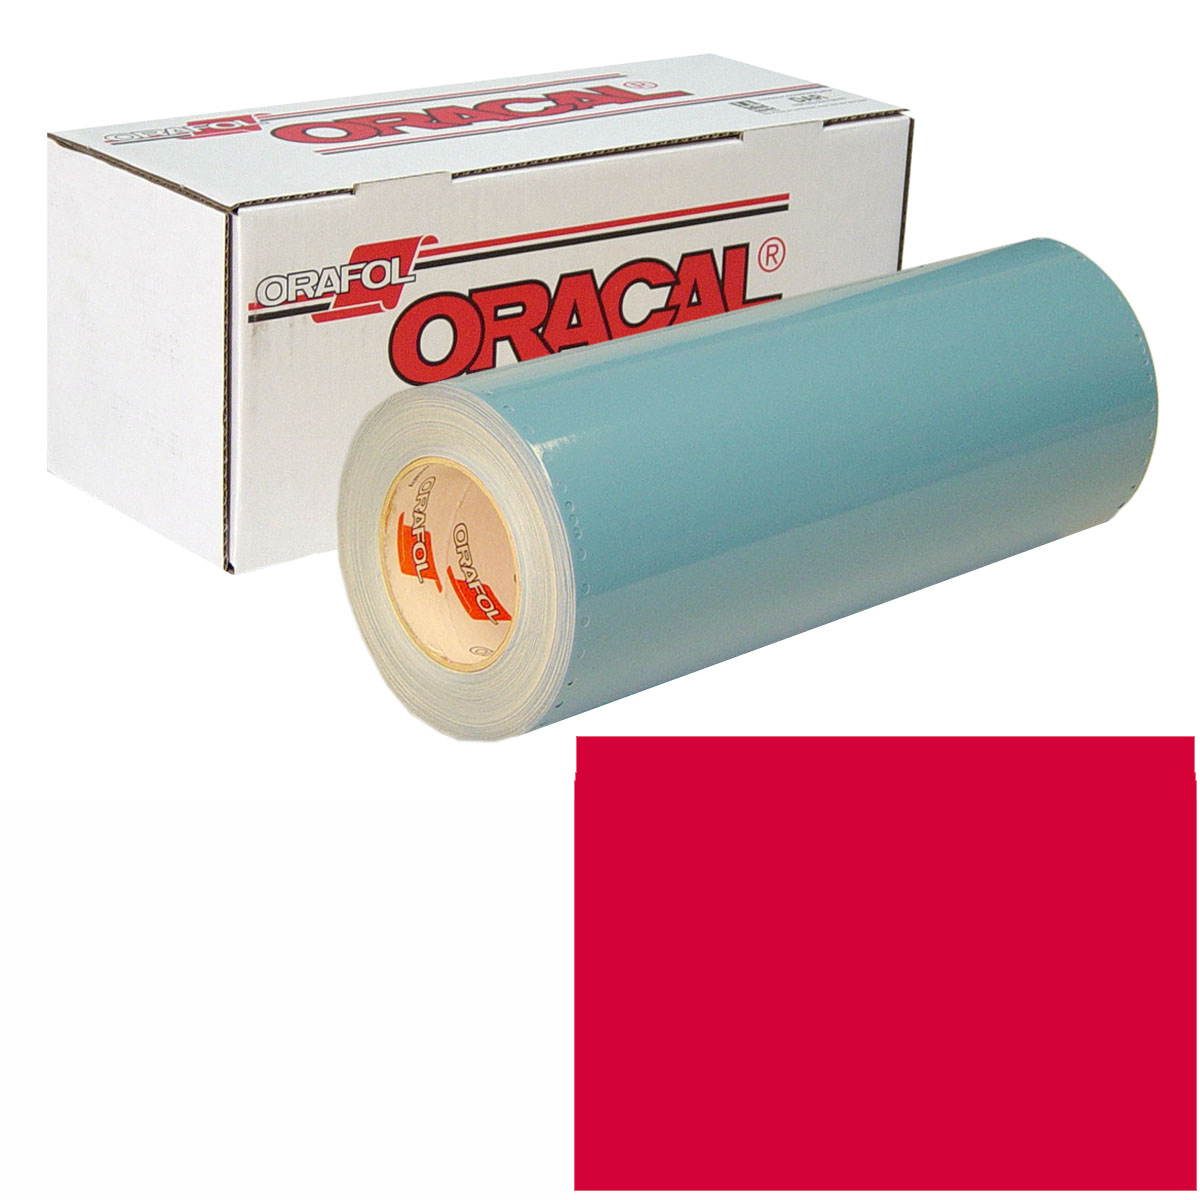 ORACAL 751 Unp 24in X 50yd 032 Light Red